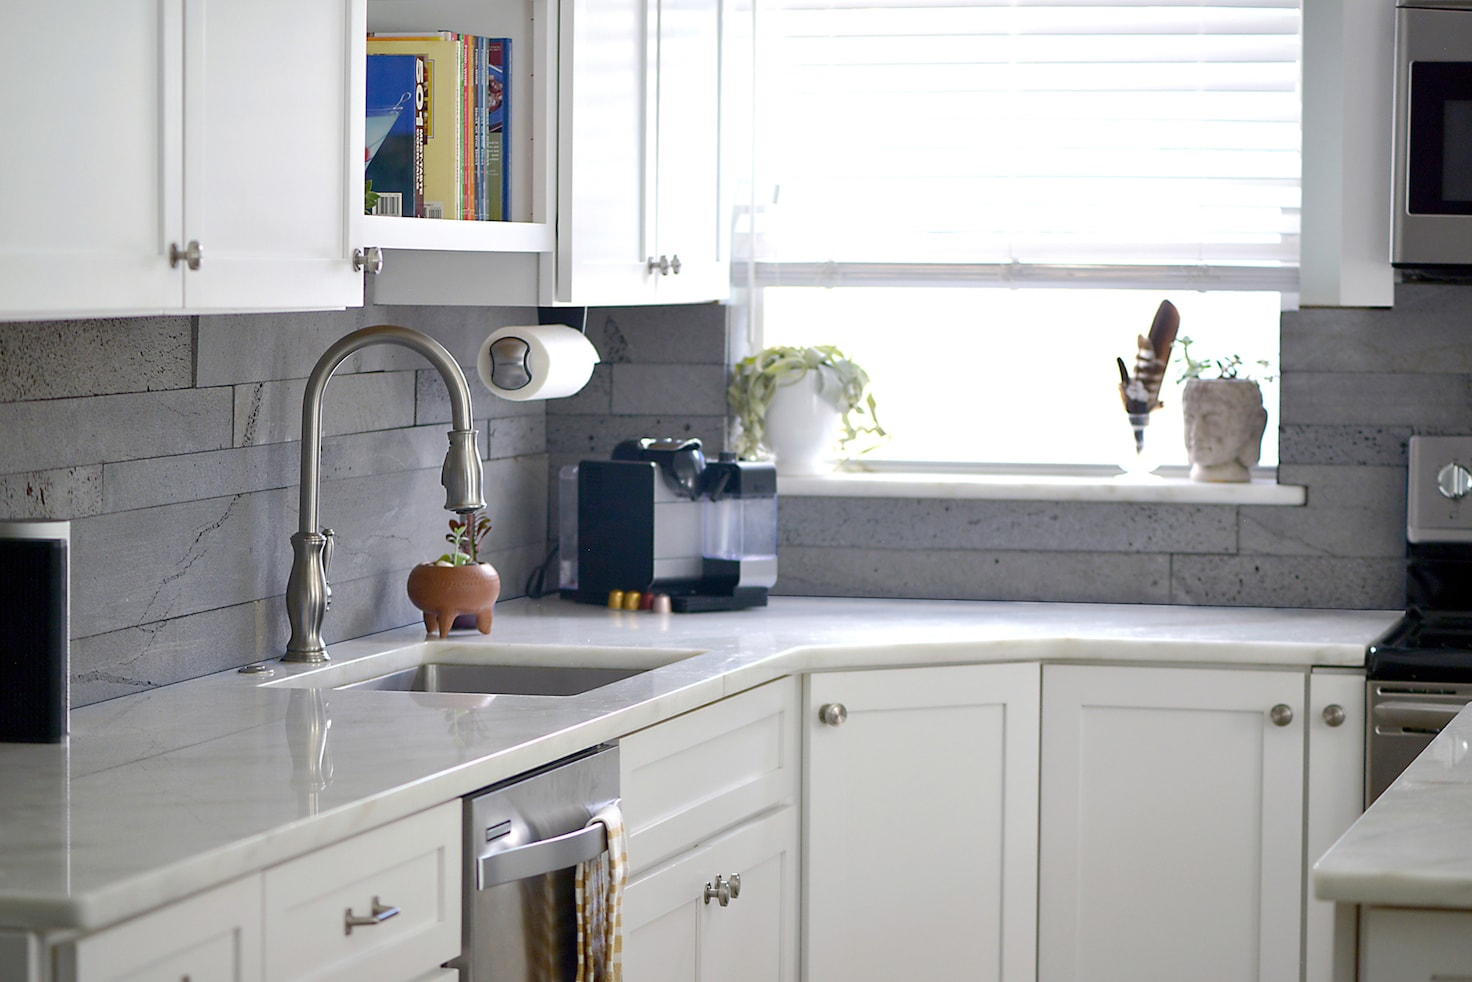 Planc Platinum used on a backsplash of a small modern kitchen with cabinets and white marble counter tops